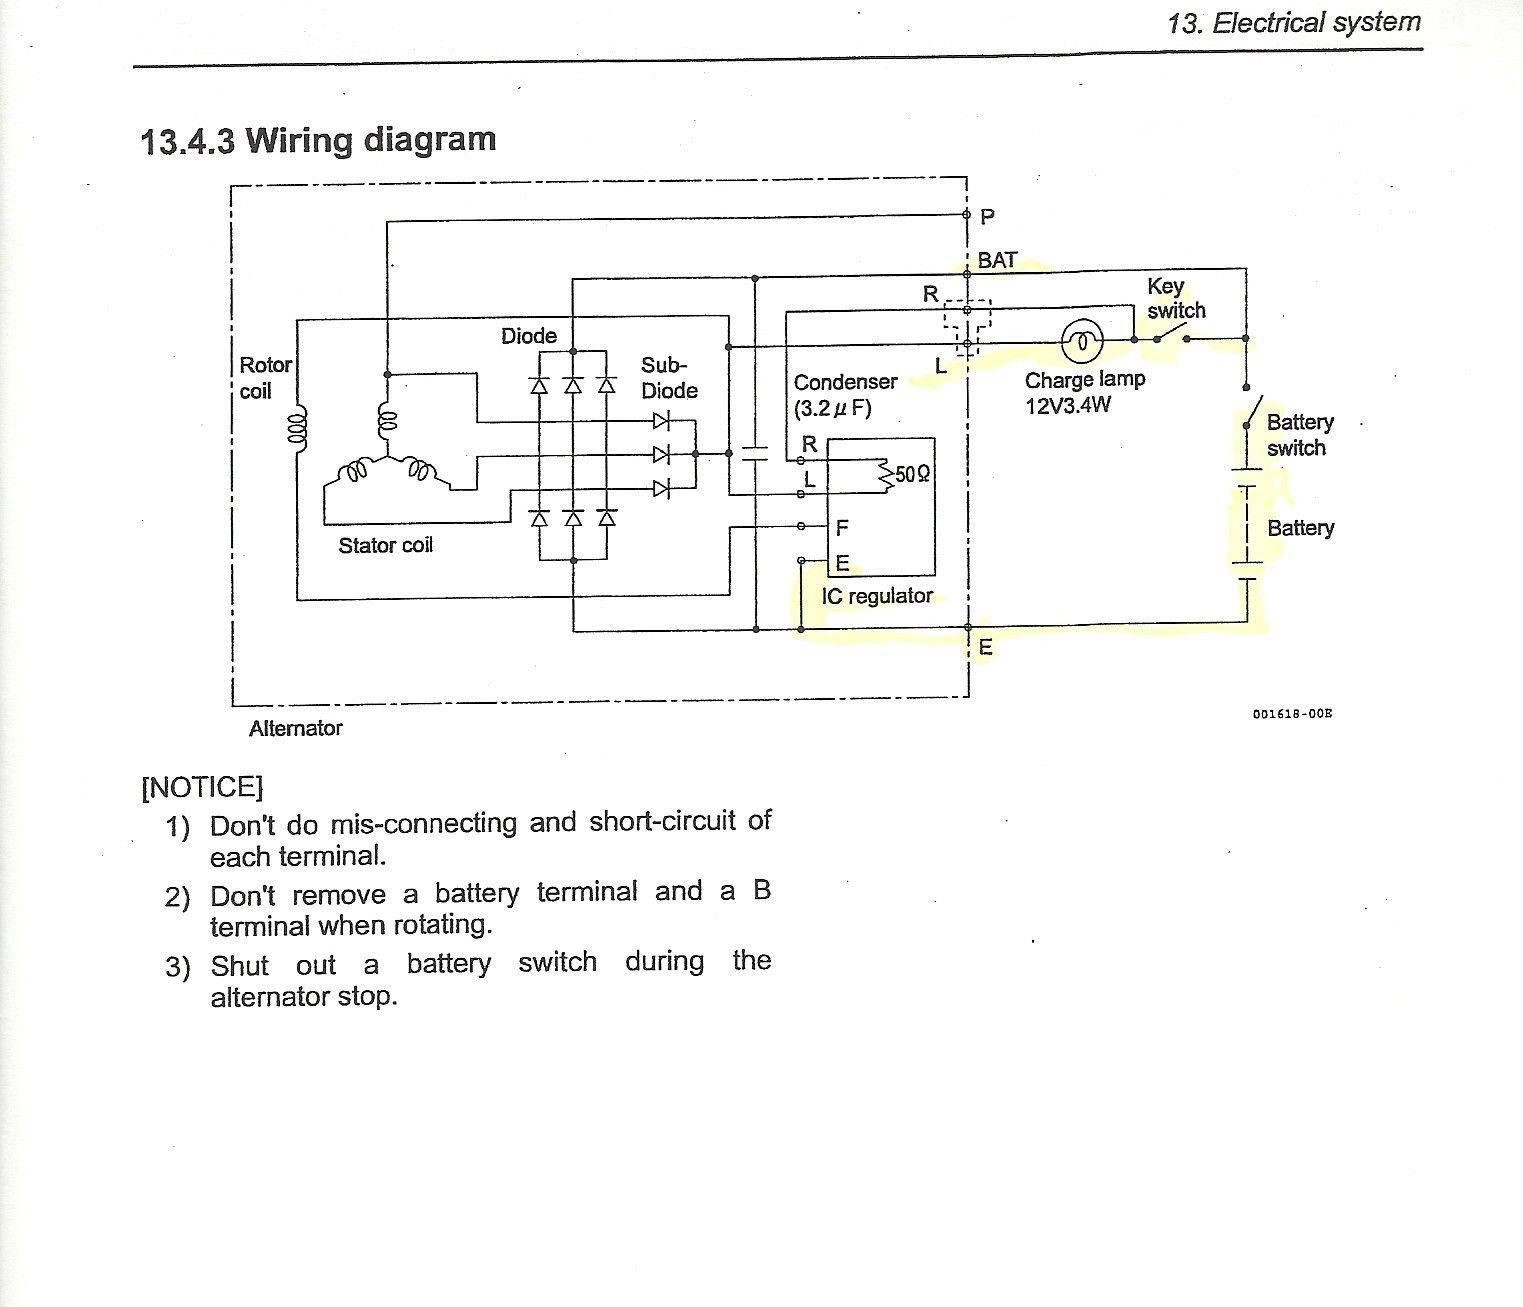 Awesome Isuzu Alternator Wiring Diagram Diagrams Digramssample Diagramimages Wiringdiagramsample Wiringdiagram Alternator Diagram Electrical System